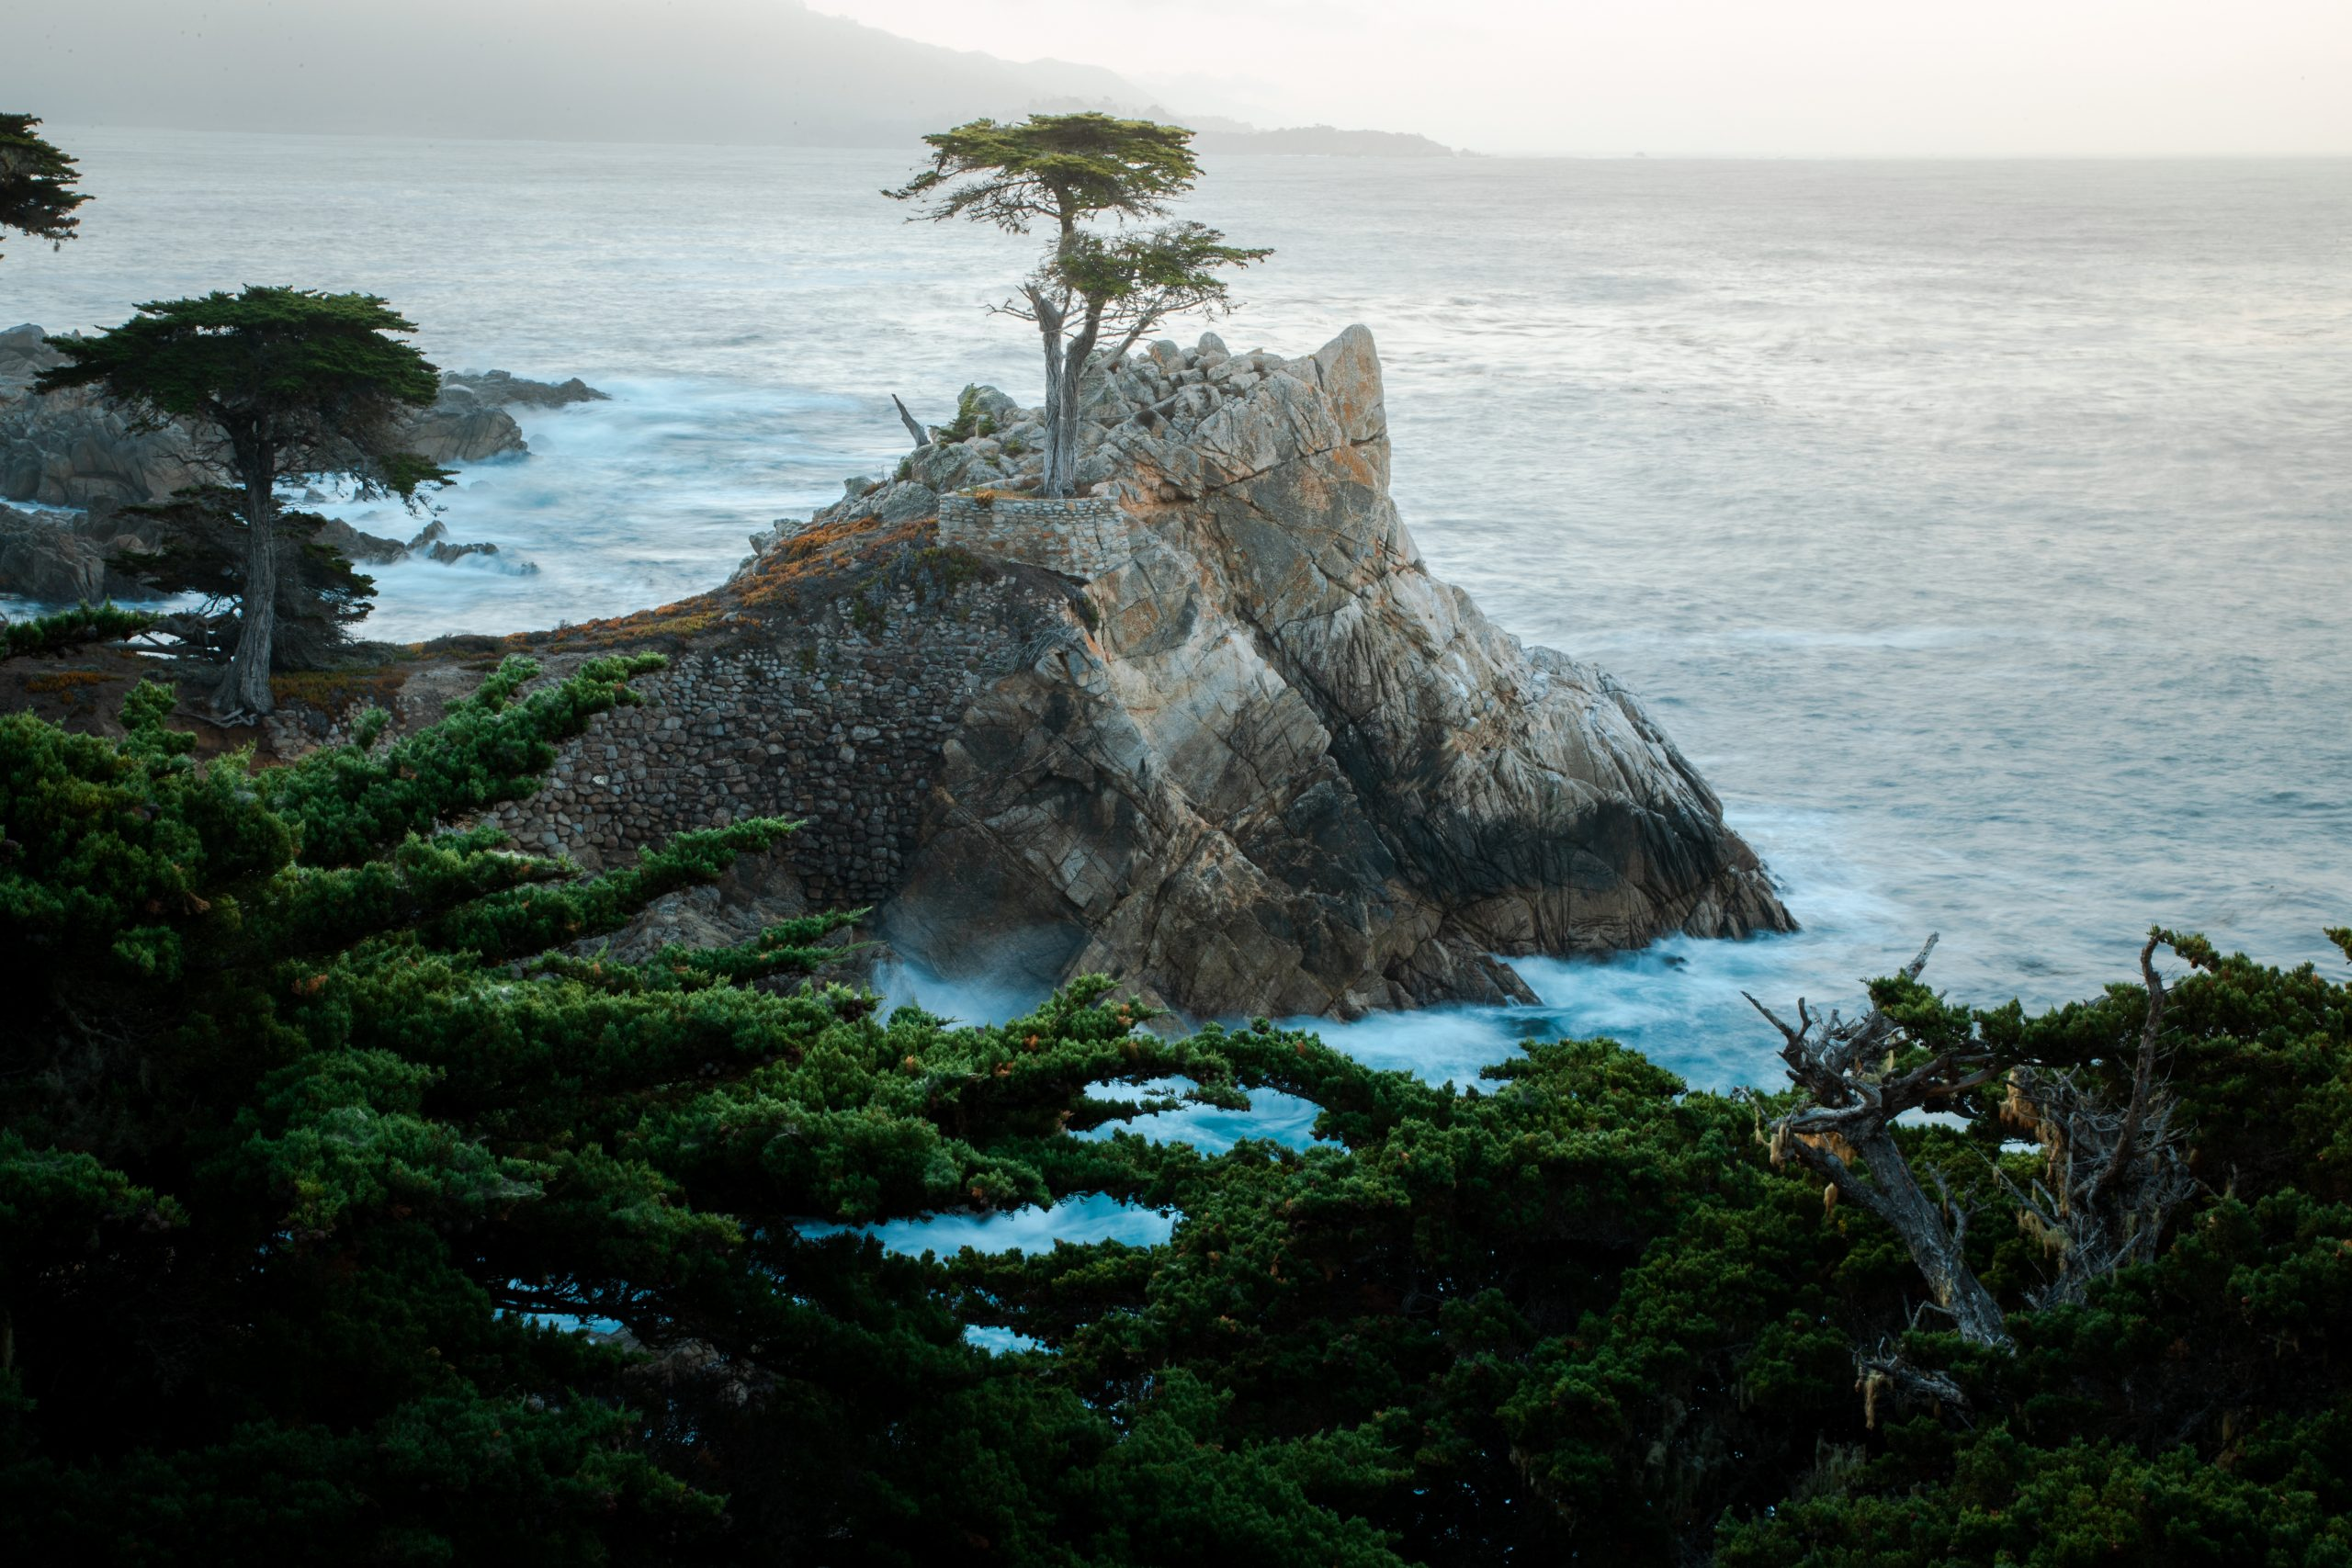 The Lone Cypress is a Monterey cypress tree in Pebble Beach, California. Standing on a granite hillside off the 17-Mile Drive, the tree is a Western icon. The photo was taken aerially from a drone.